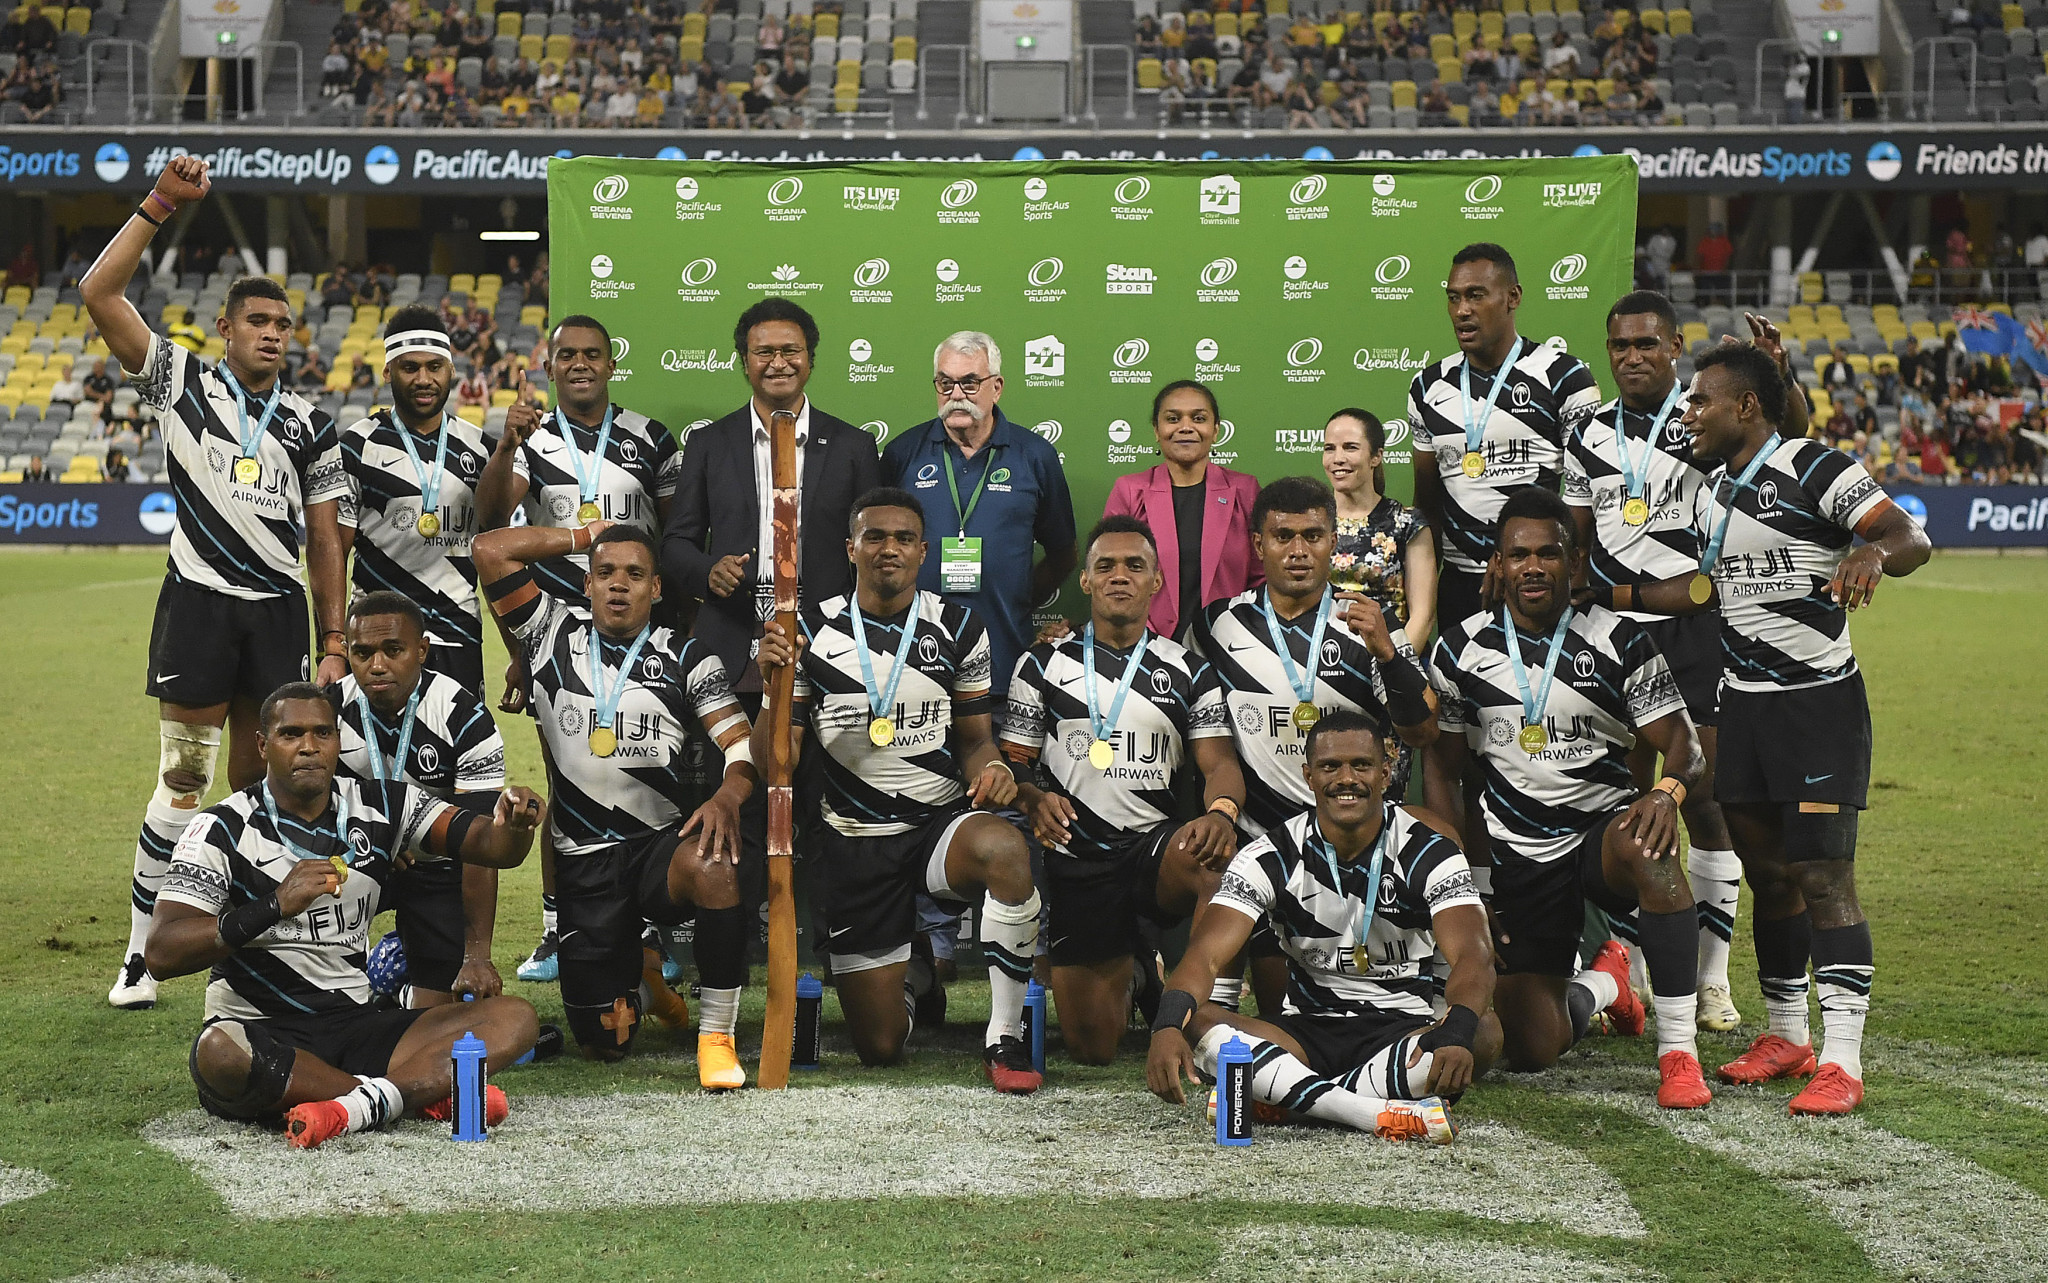 Fiji and New Zealand earn titles after strong displays at Oceania Sevens Championships